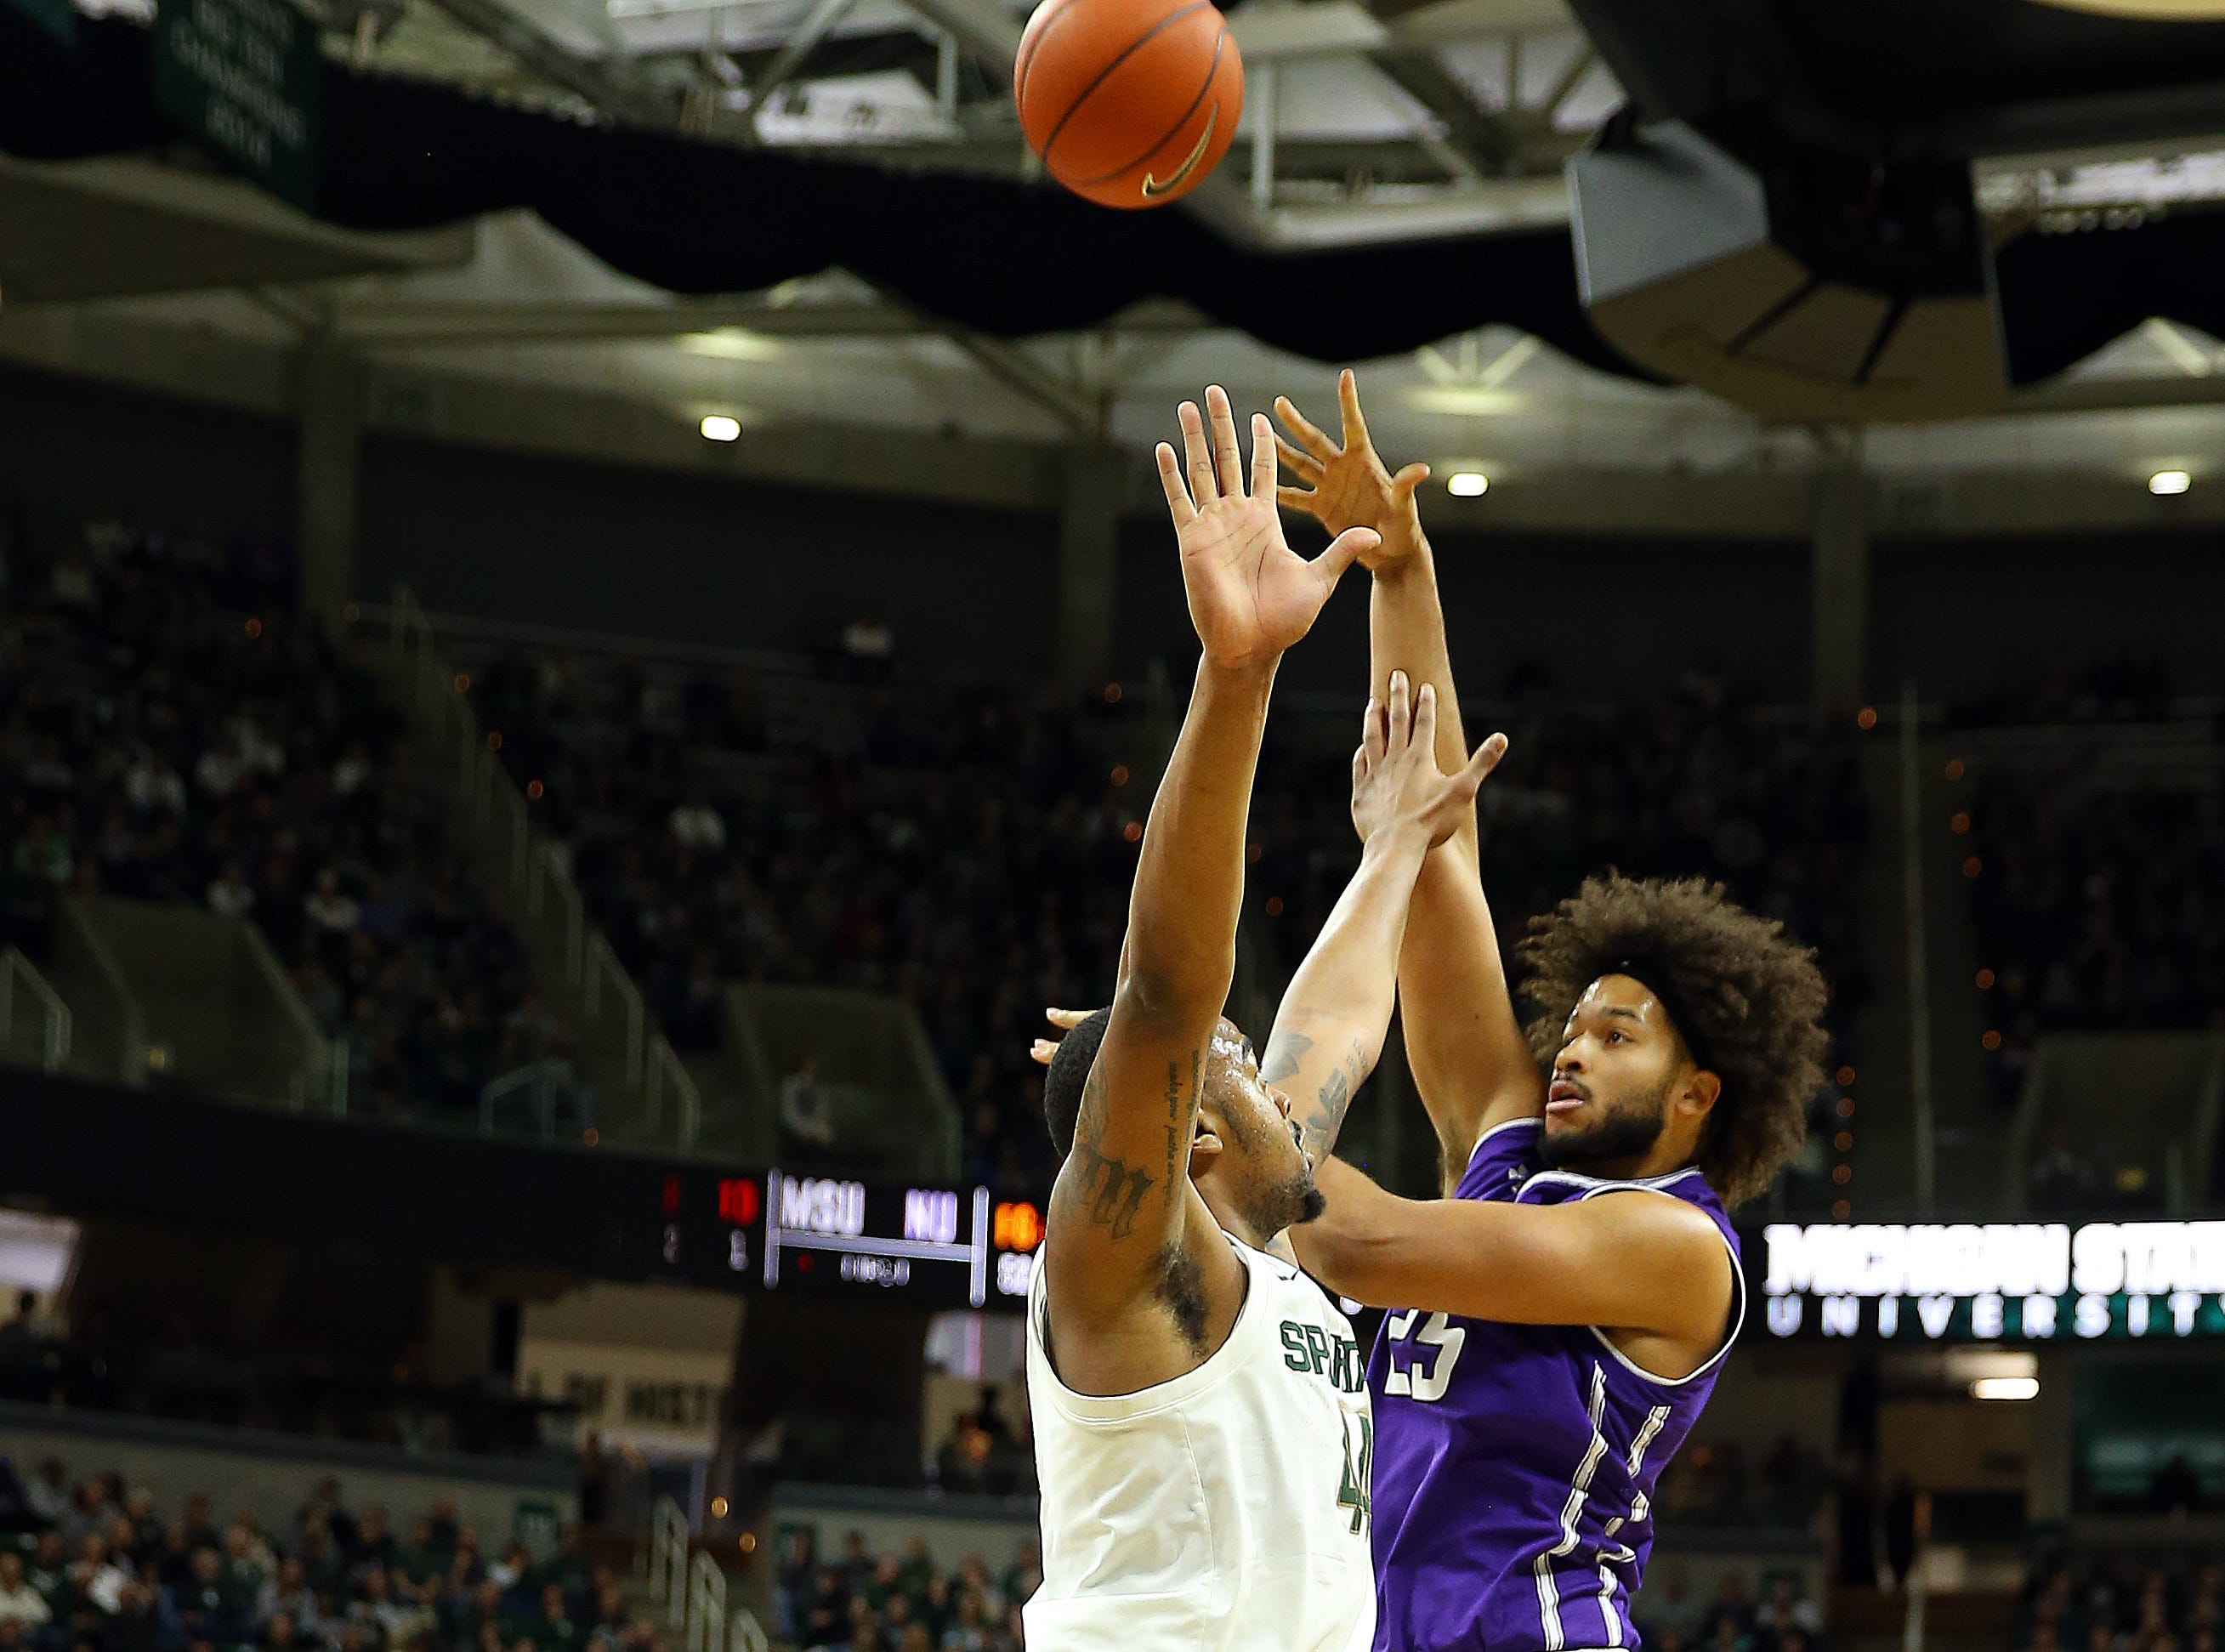 Jan 2, 2019; East Lansing, MI, USA; Northwestern Wildcats center Barret Benson (25) shoots over Michigan State Spartans forward Nick Ward (44) during the first half of a game at the Breslin Center. Mandatory Credit: Mike Carter-USA TODAY Sports